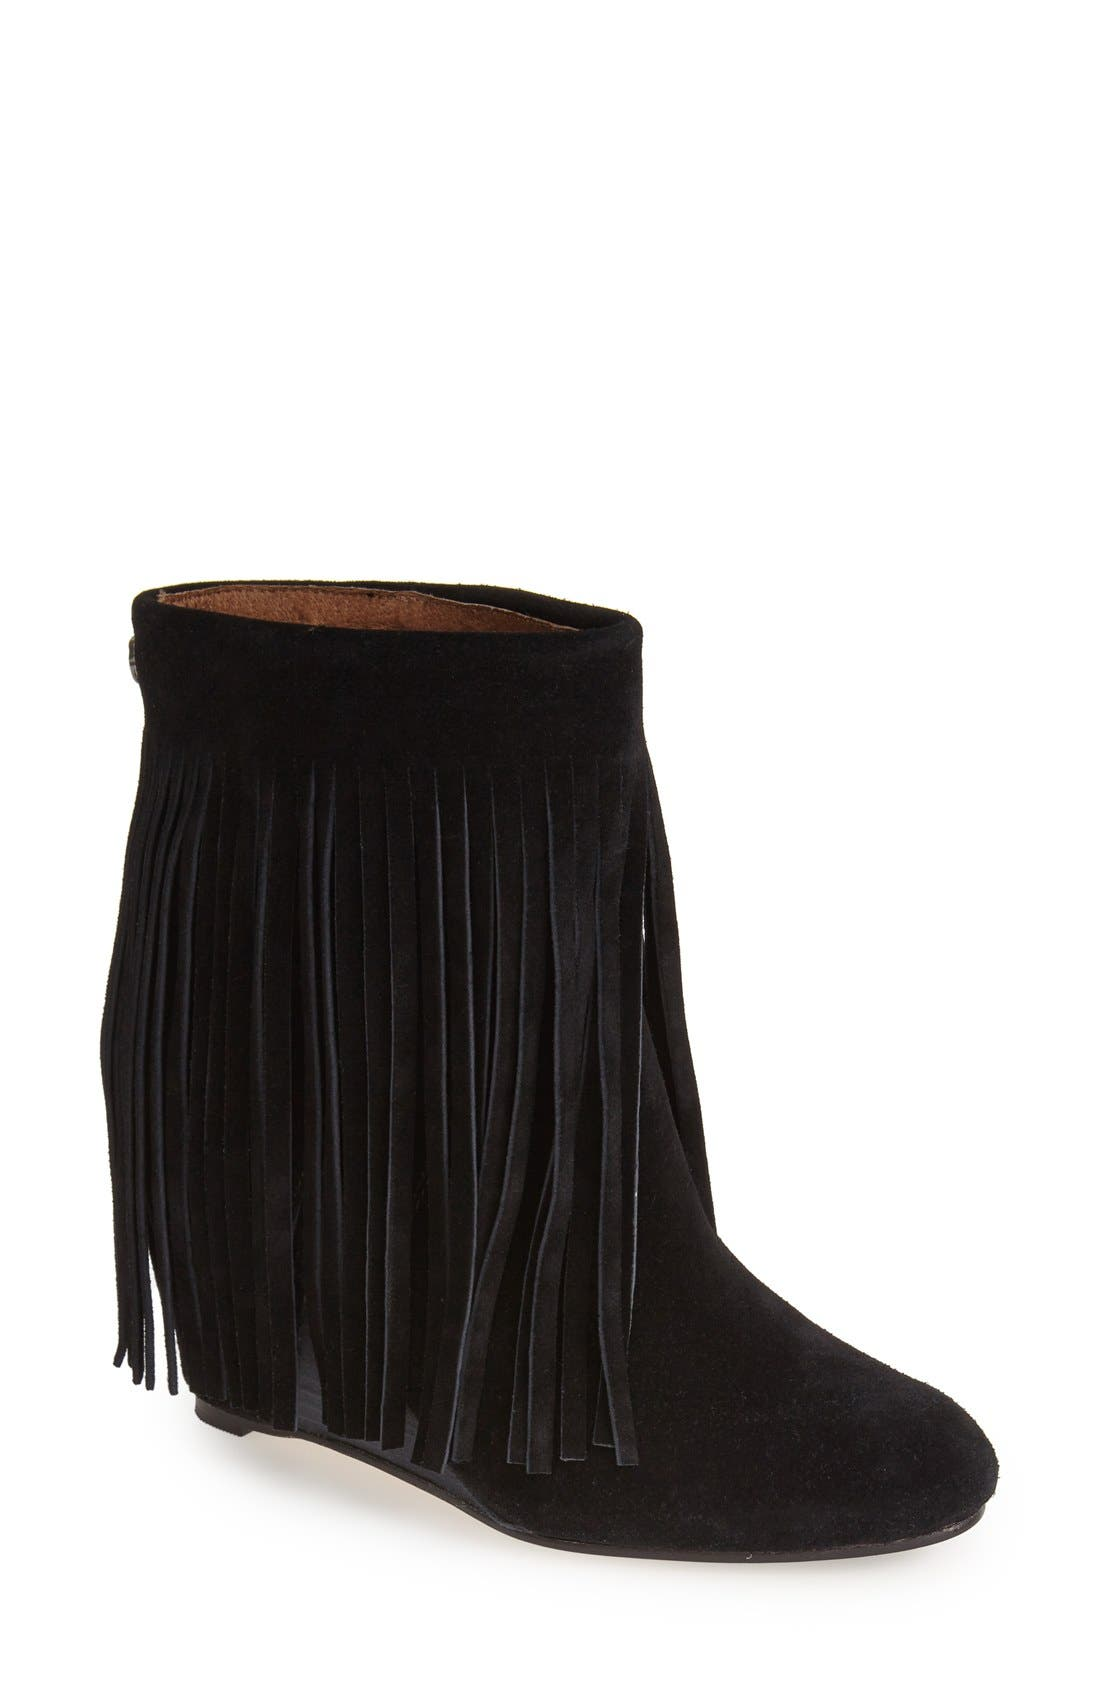 'Zarin' Fringe Wedge Bootie, Main, color, 001